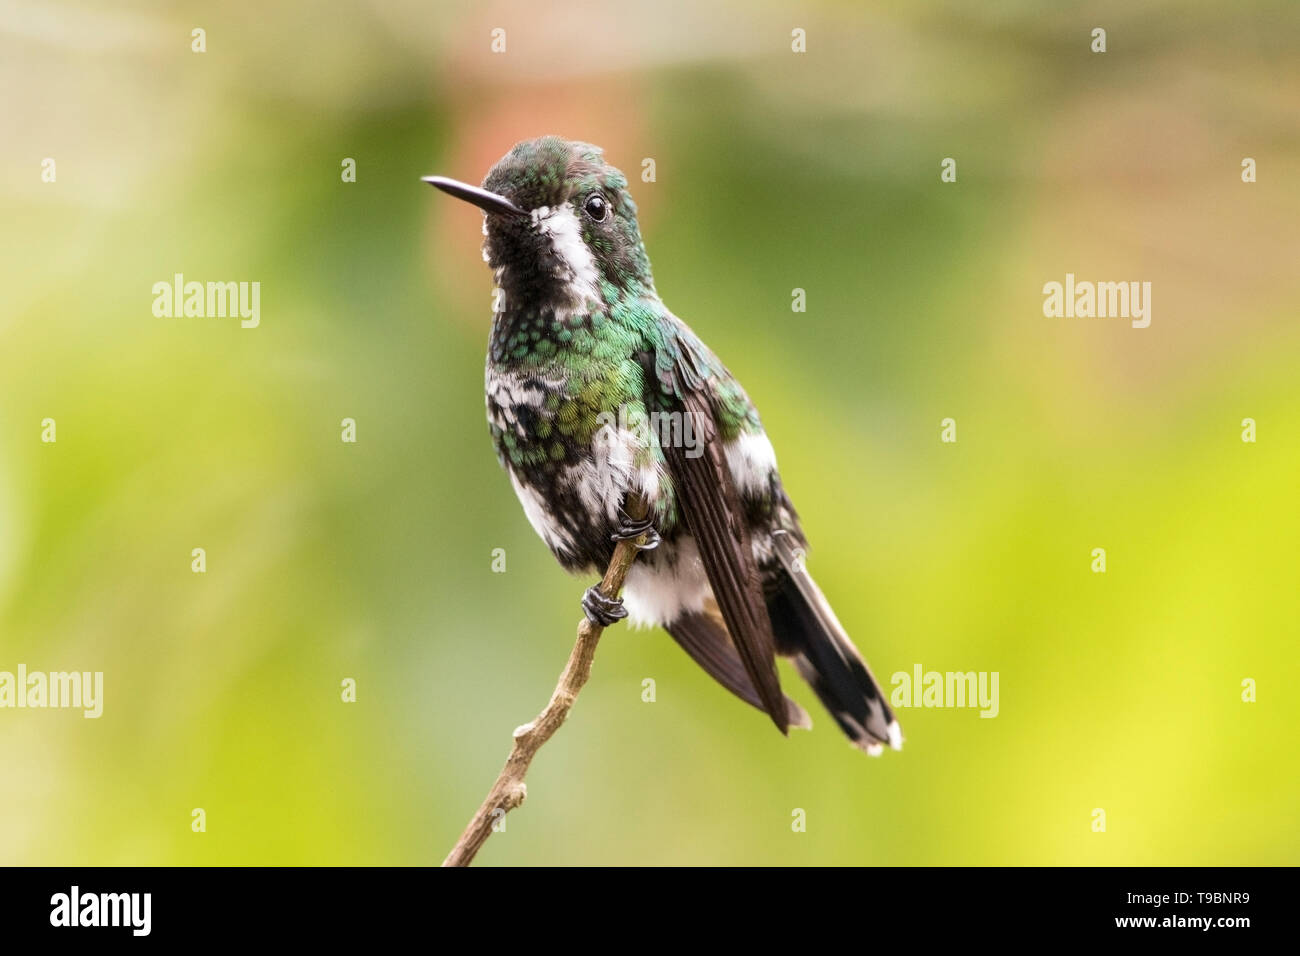 Green Thorntail, adult female perched on branch, La Paz waterfall gardens, Costa Rica 24 March 2019 - Stock Image